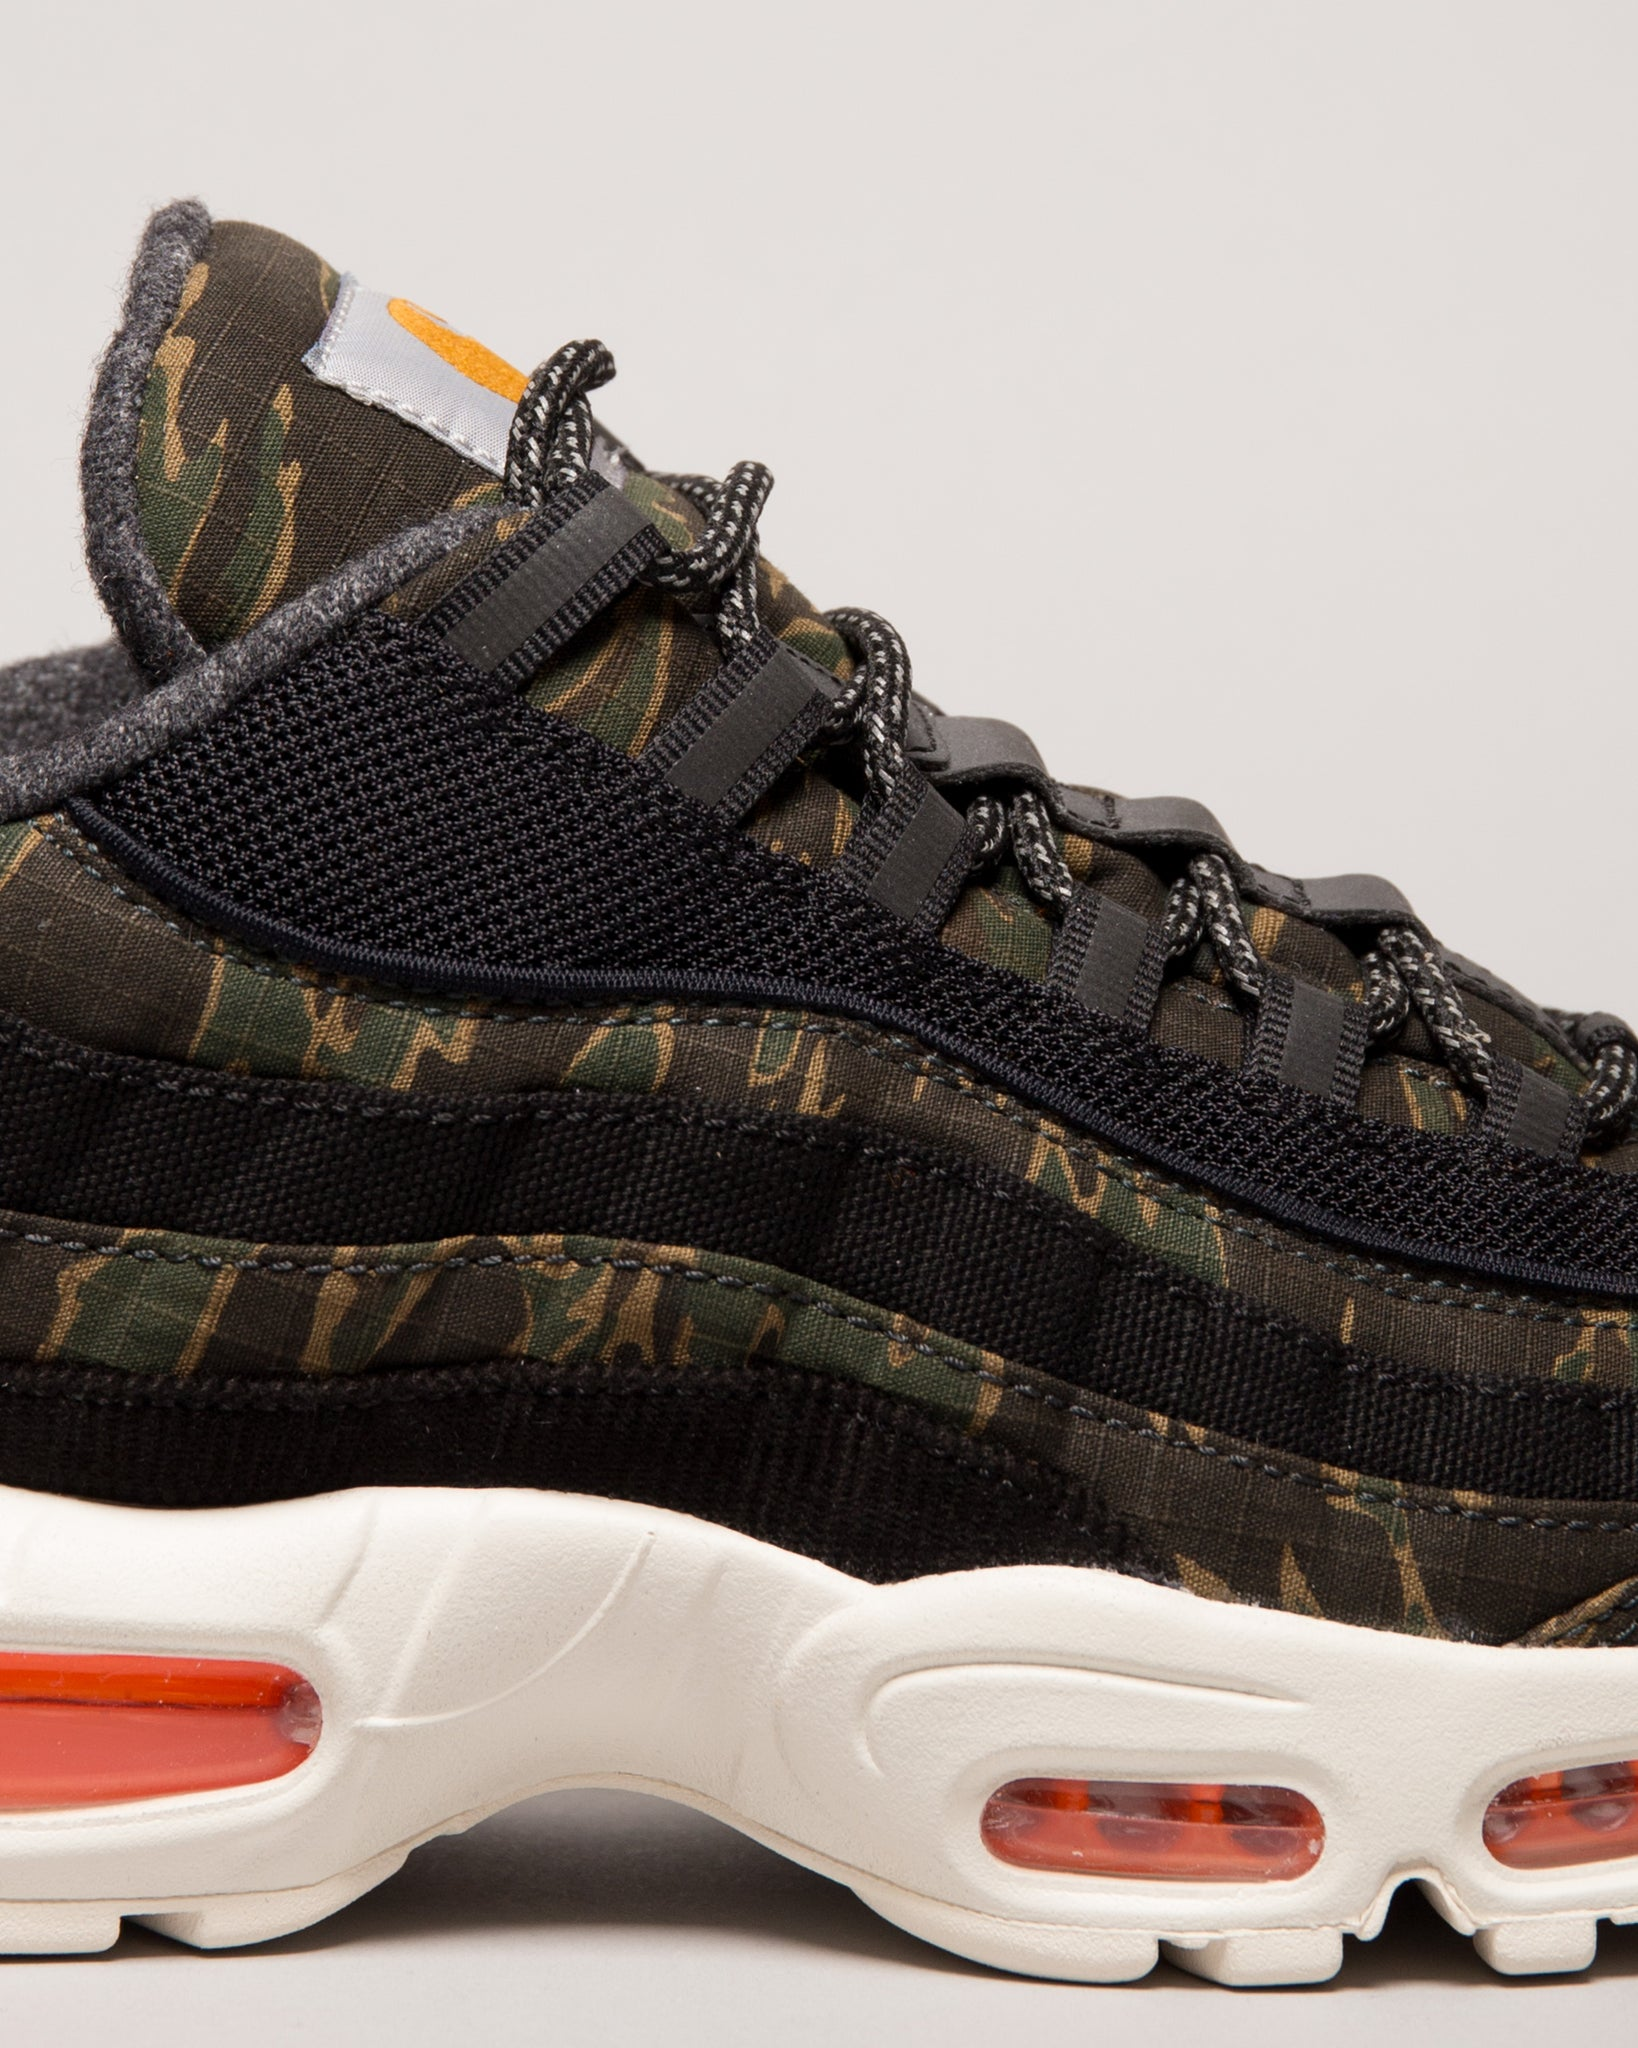 Carhartt WIP Air Max 95 Black/Total Orange/Sail